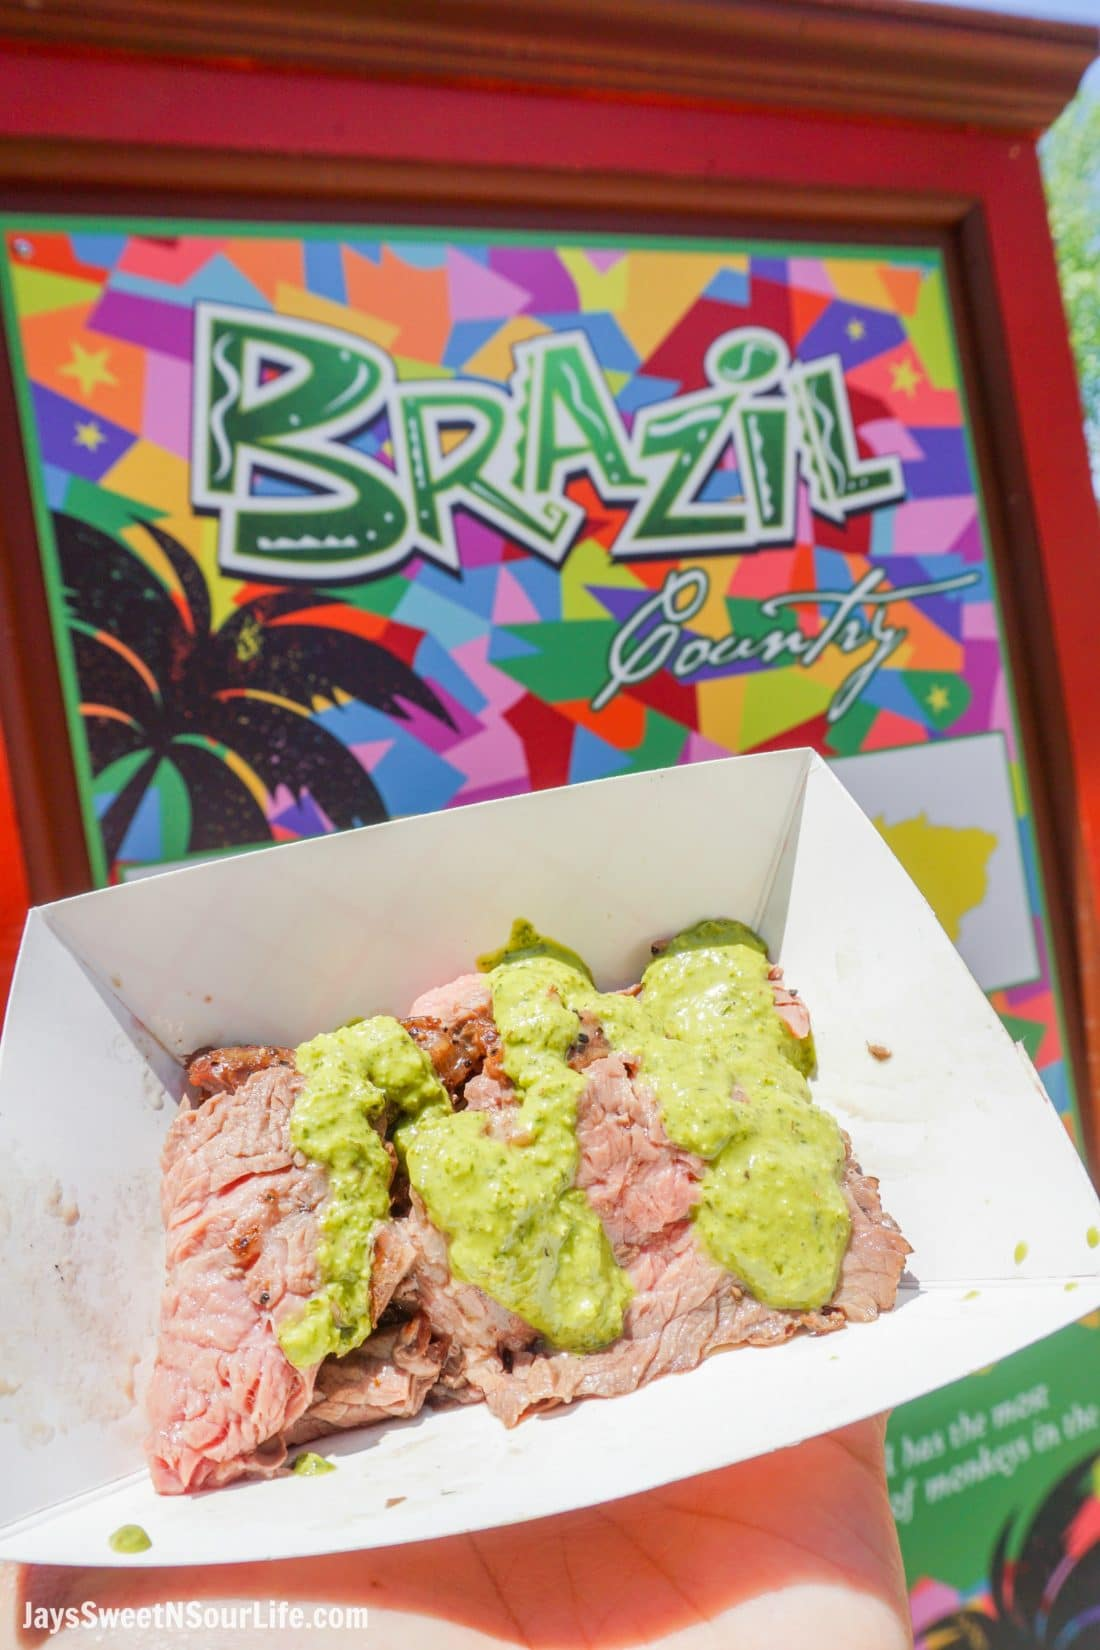 Brazil Food 2018 Busch Gardens Food and Wine Festival. Food & Wine Festival is from 11 am to close every Friday, Saturday and Sunday, May 25 - July 1.